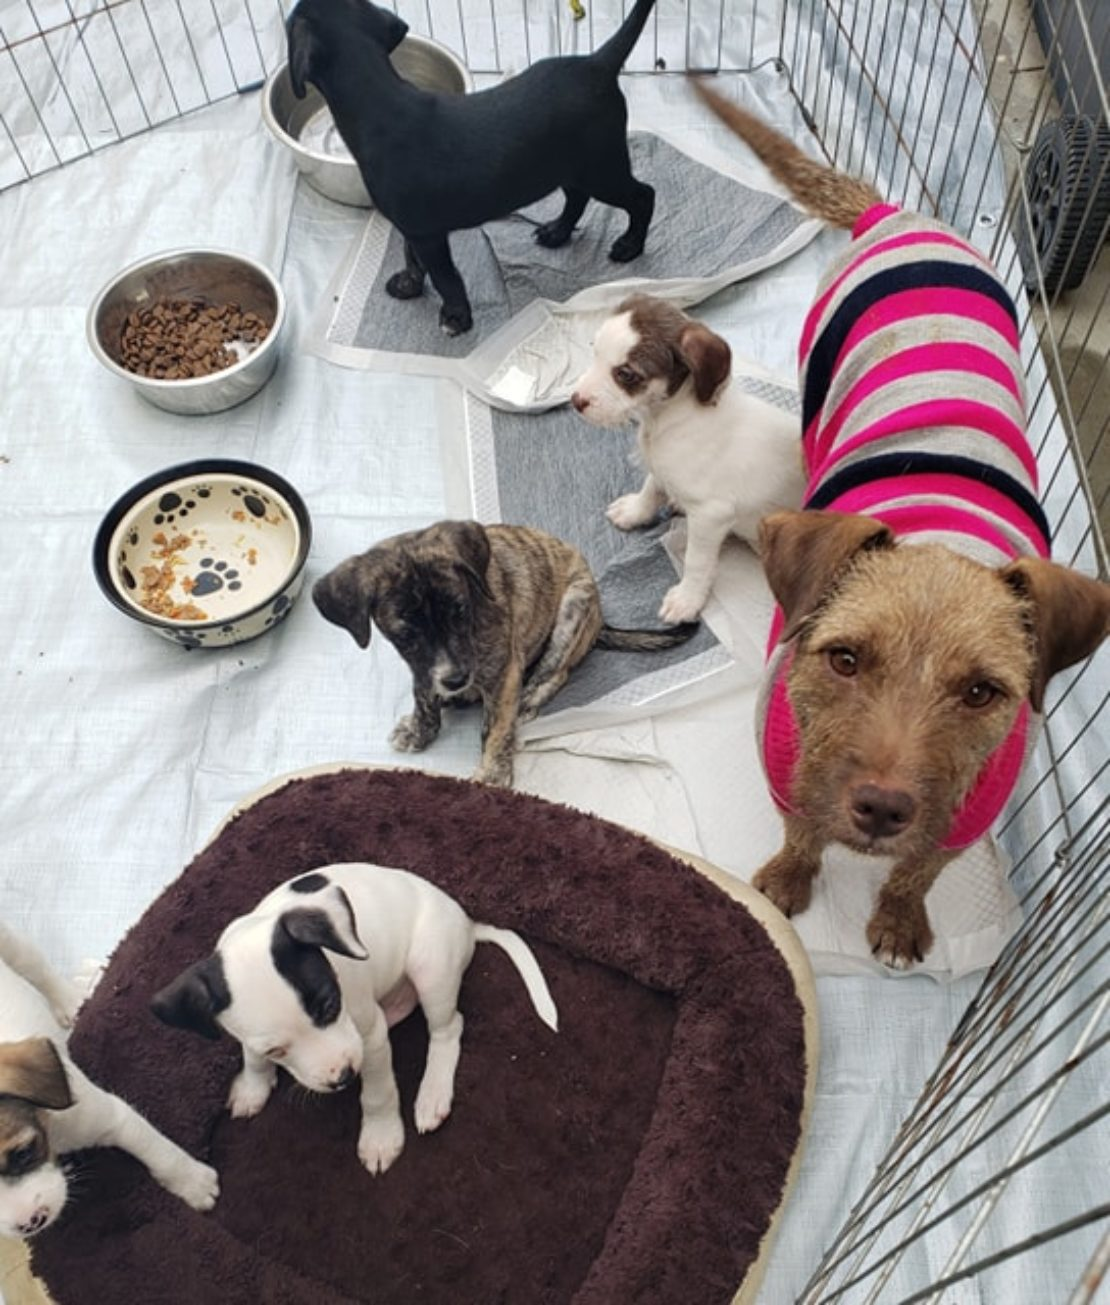 five puppies sit in blankets and beds while mom, a brown dog in a pink, white and black sweater, looks at the camera.